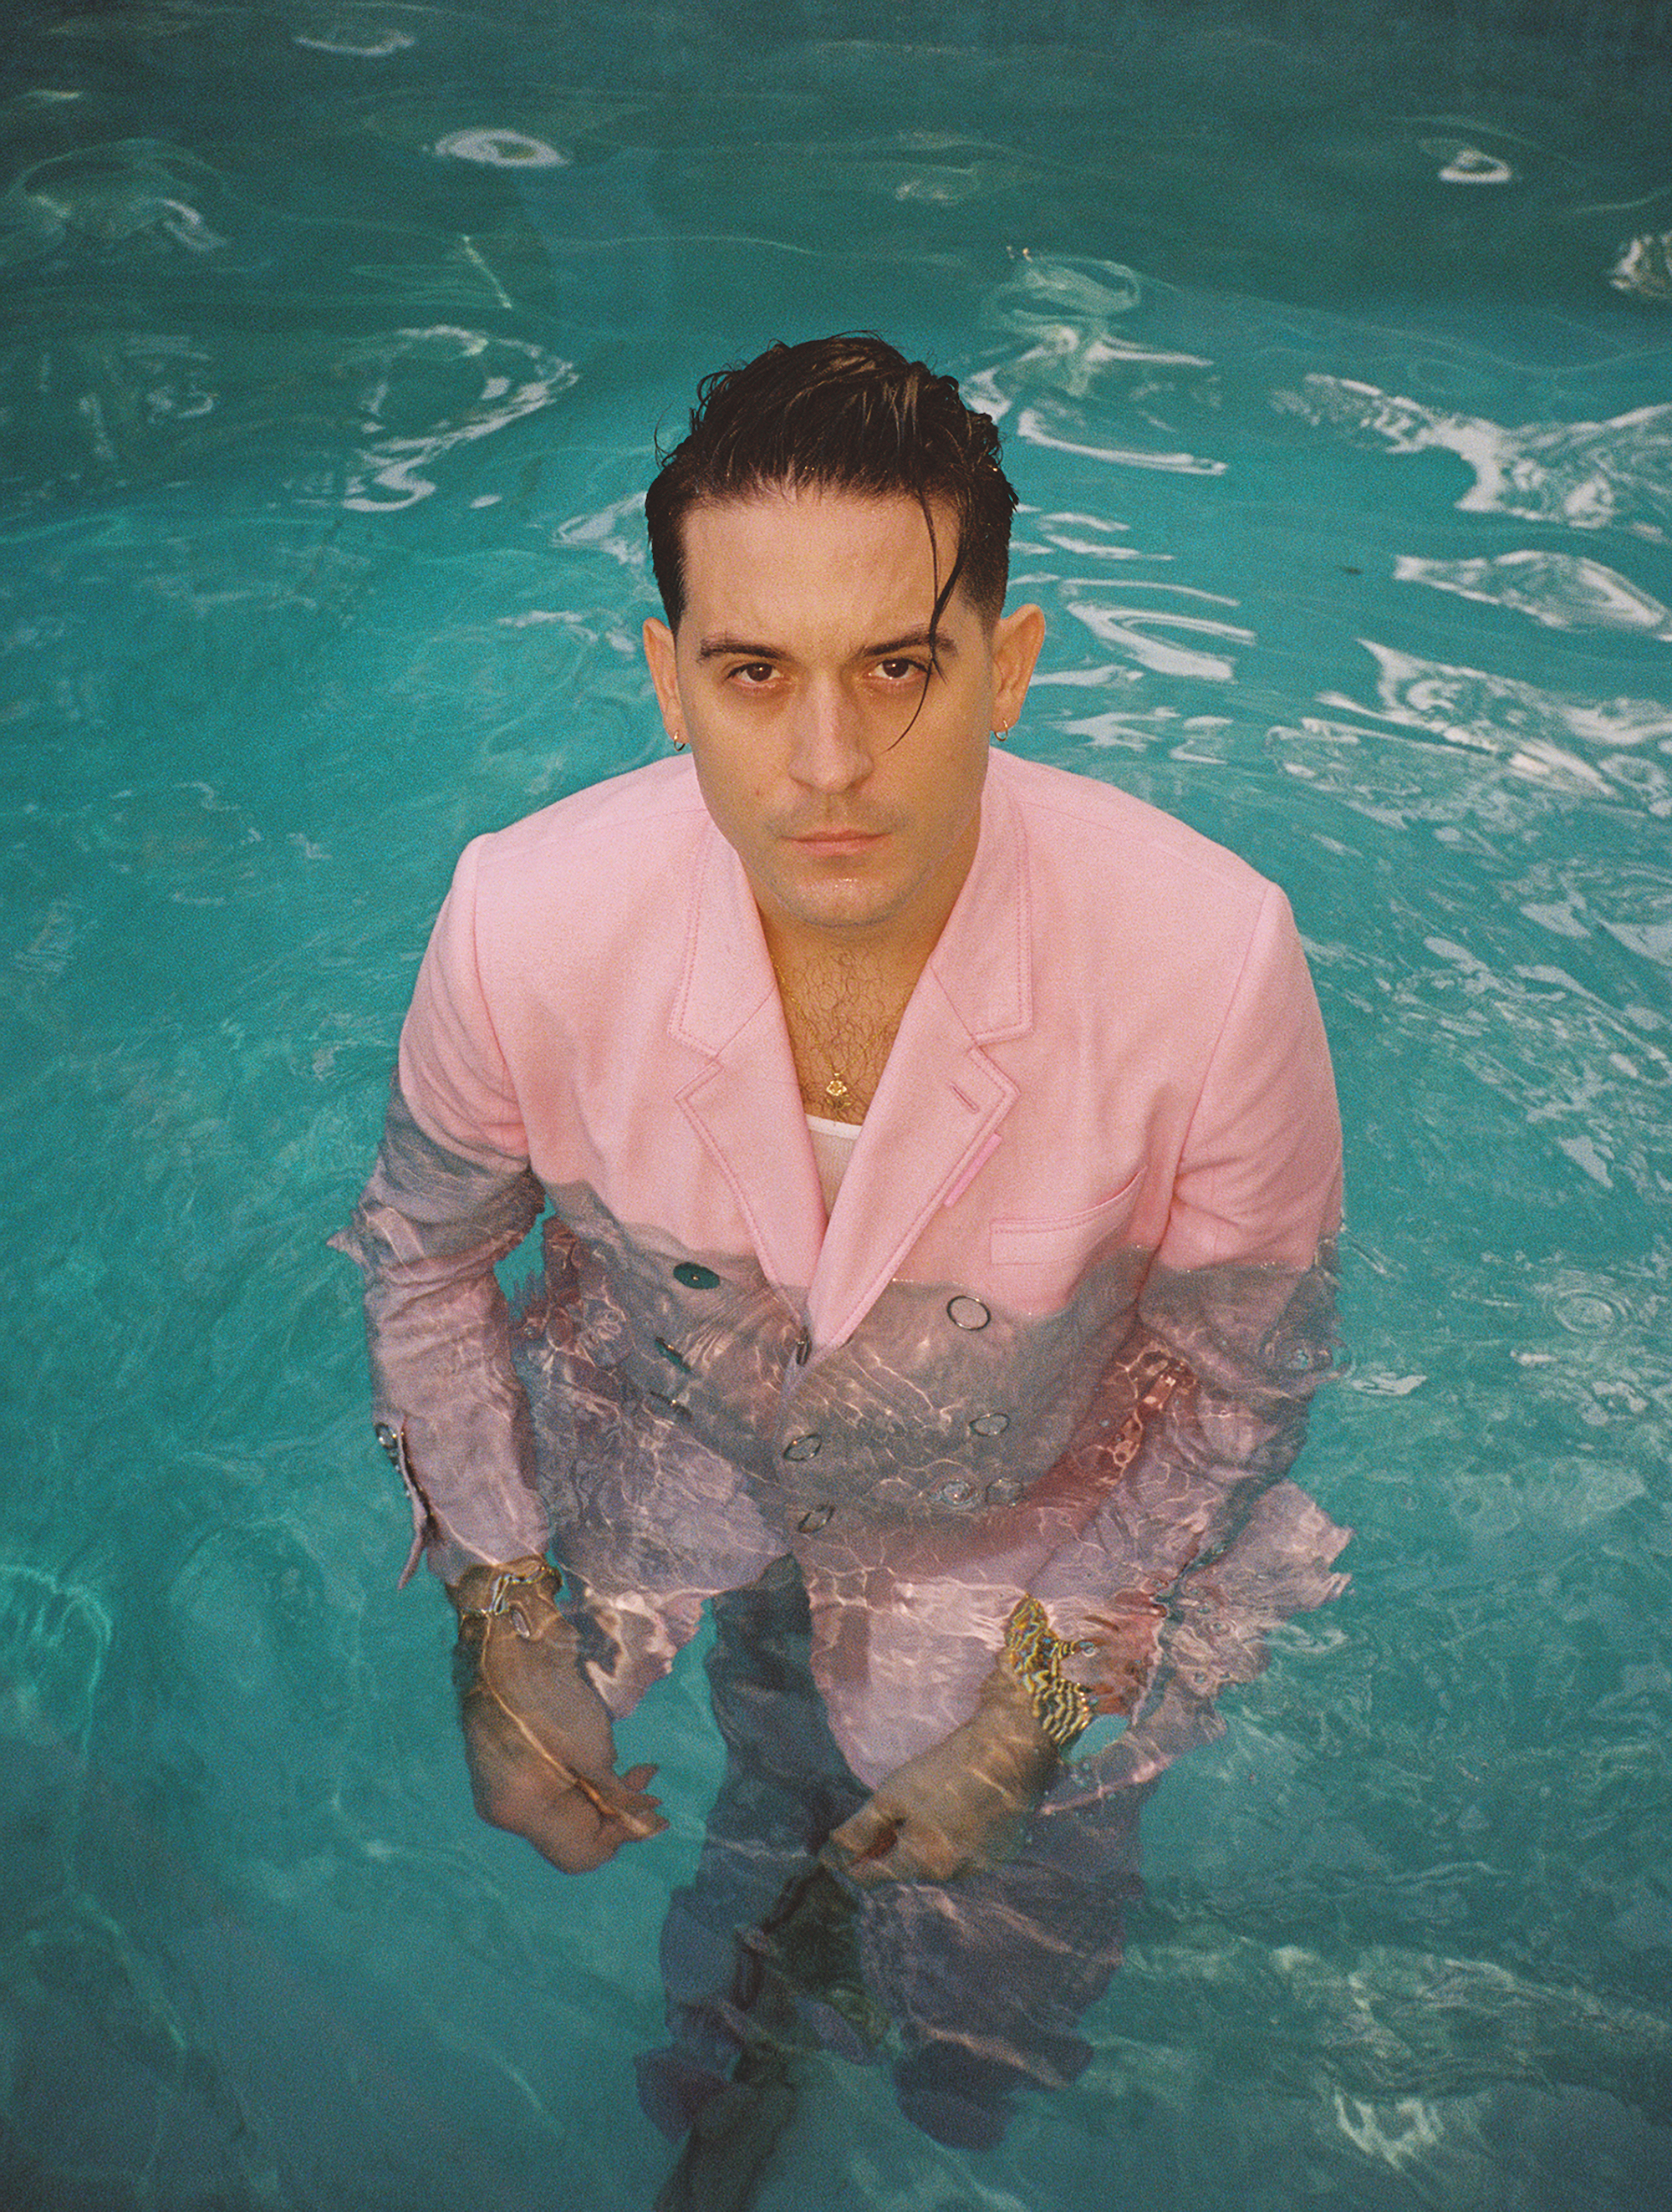 G Eazy wearing a pink suit in a pool